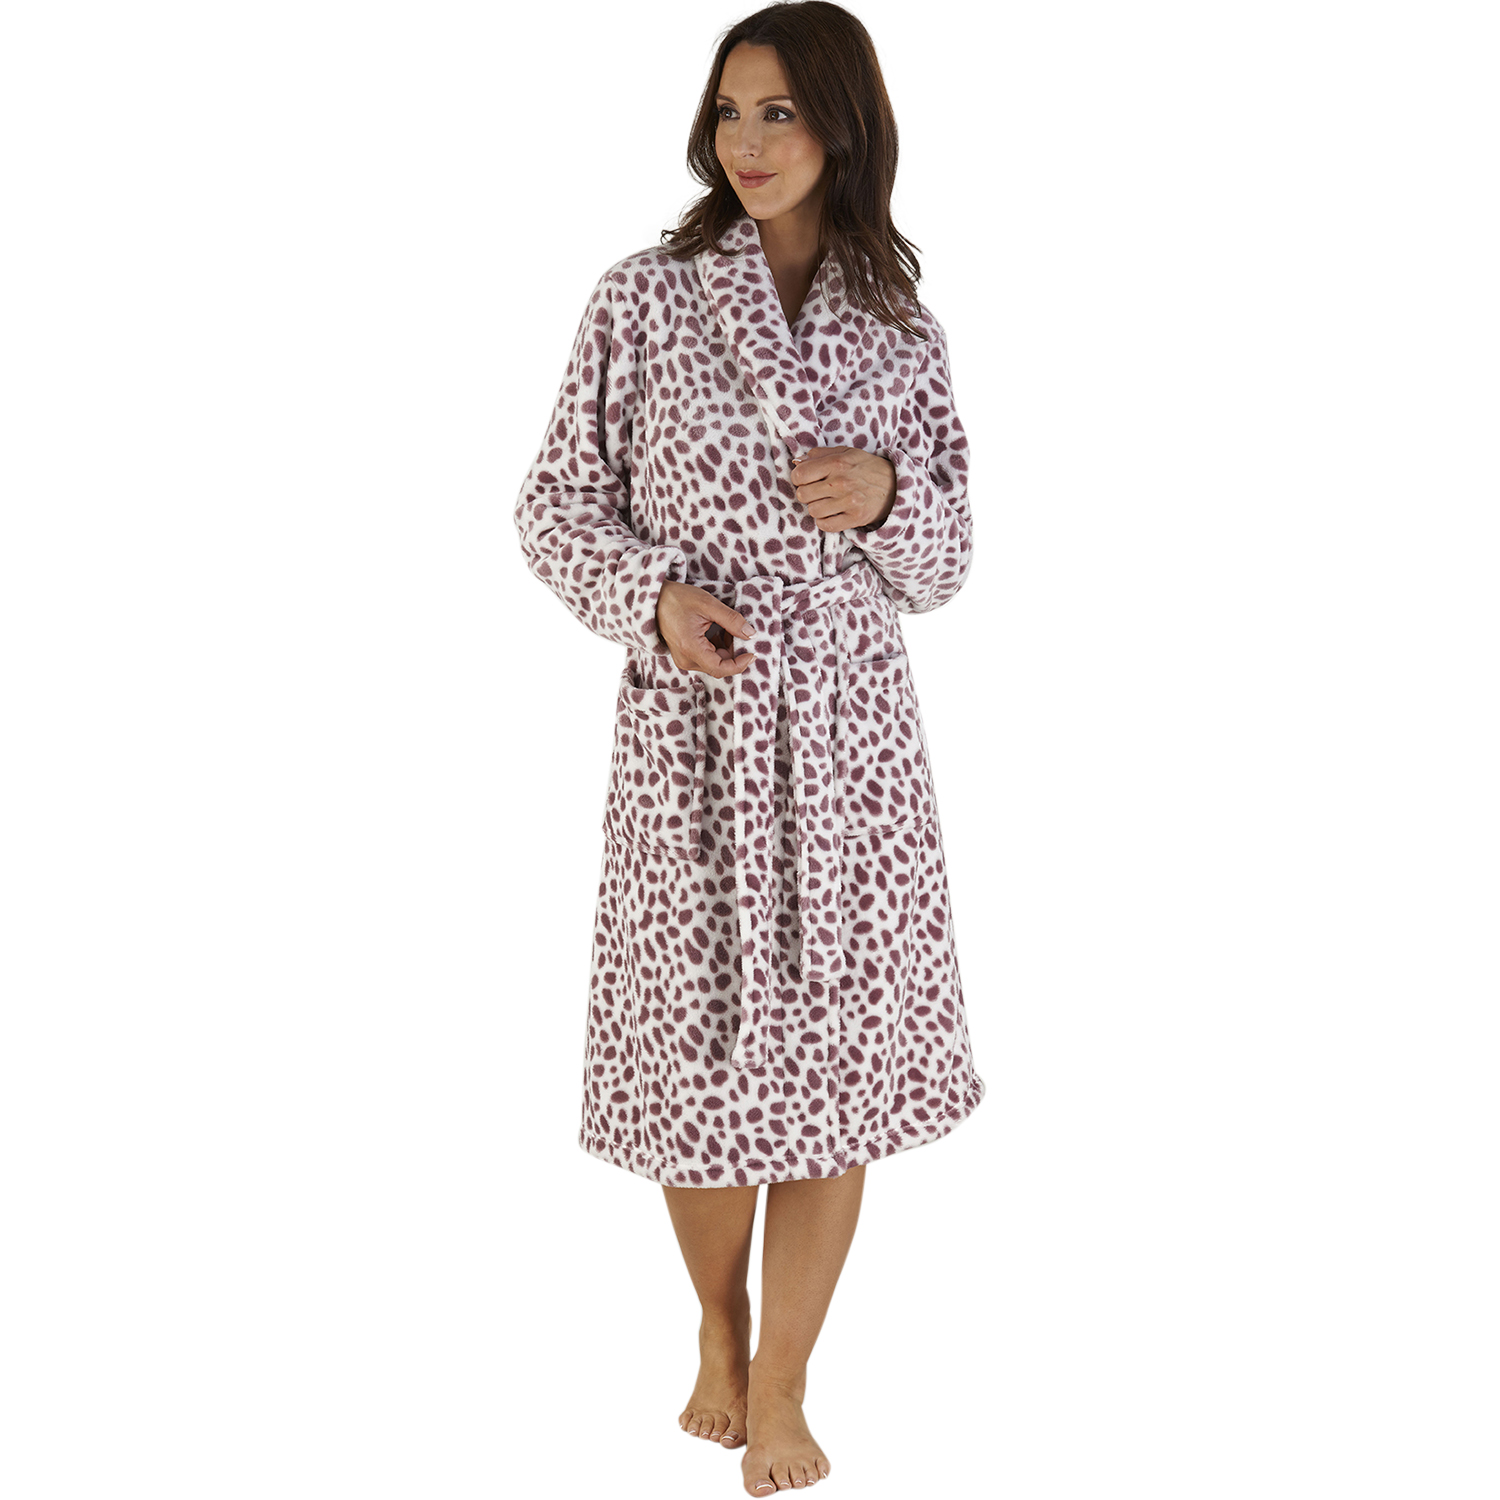 51af76e0092f Animal Print Dressing Gowns. Shop stylish dressing gowns   robes for women.  Browse towelling gowns for a chic addition